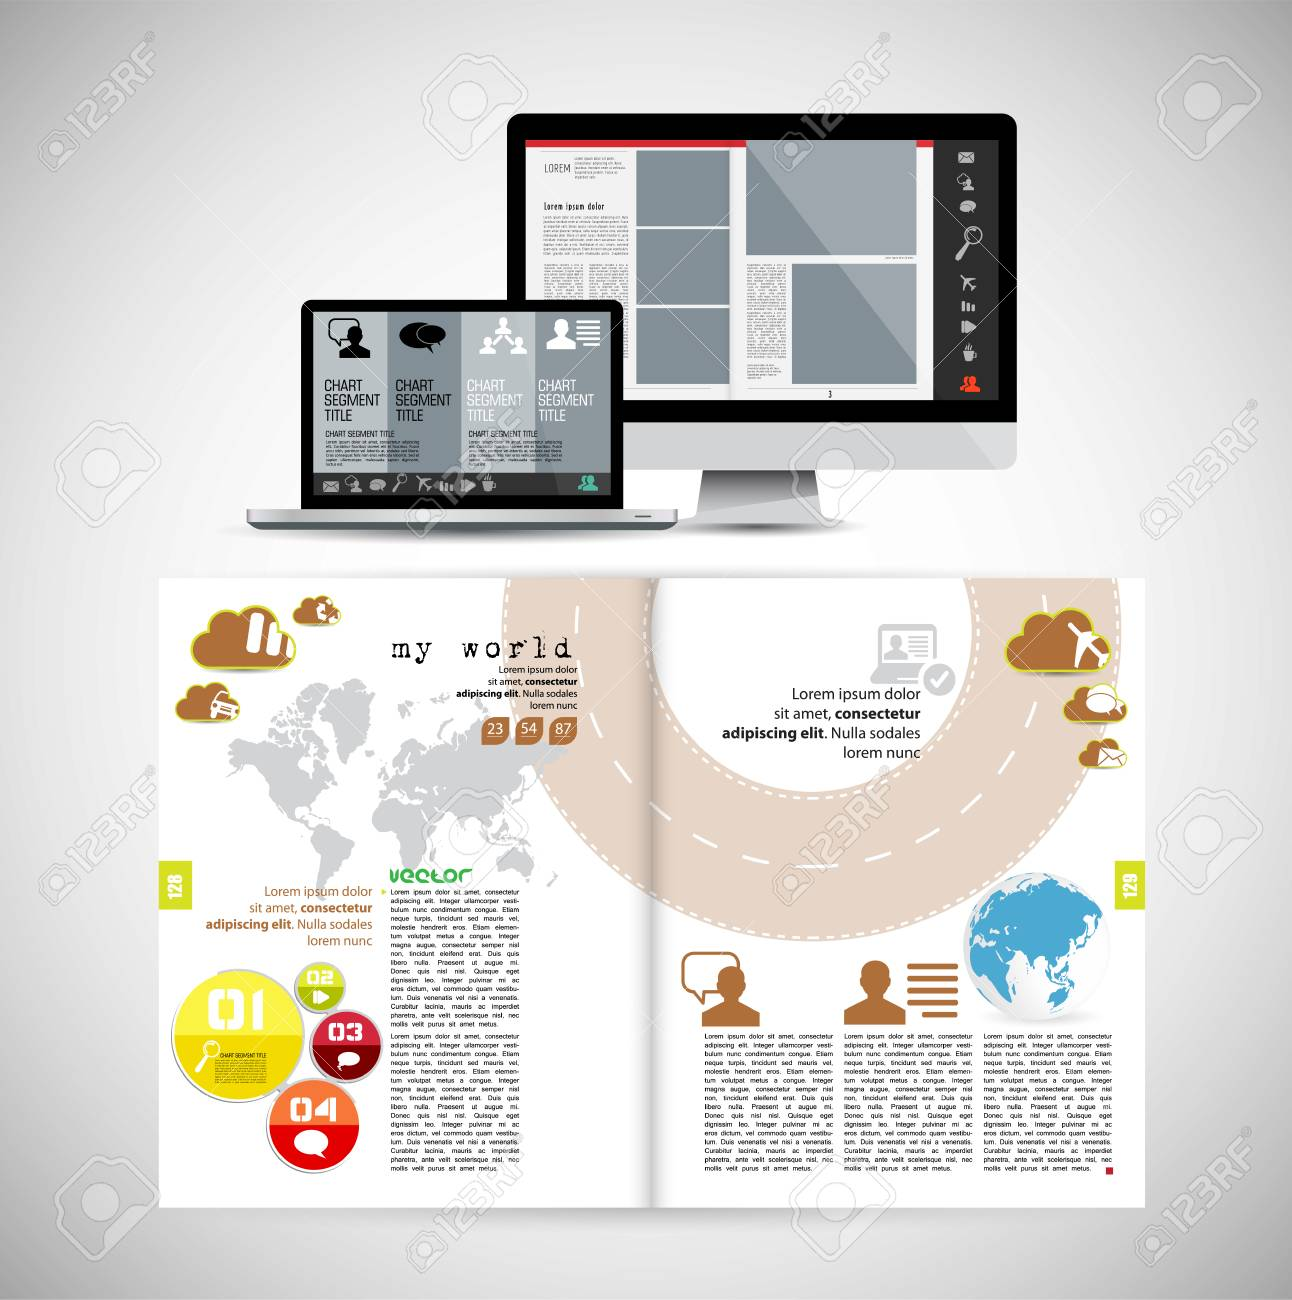 Template vector design. Ready for use for brochure, annual report or magazine - 109468767